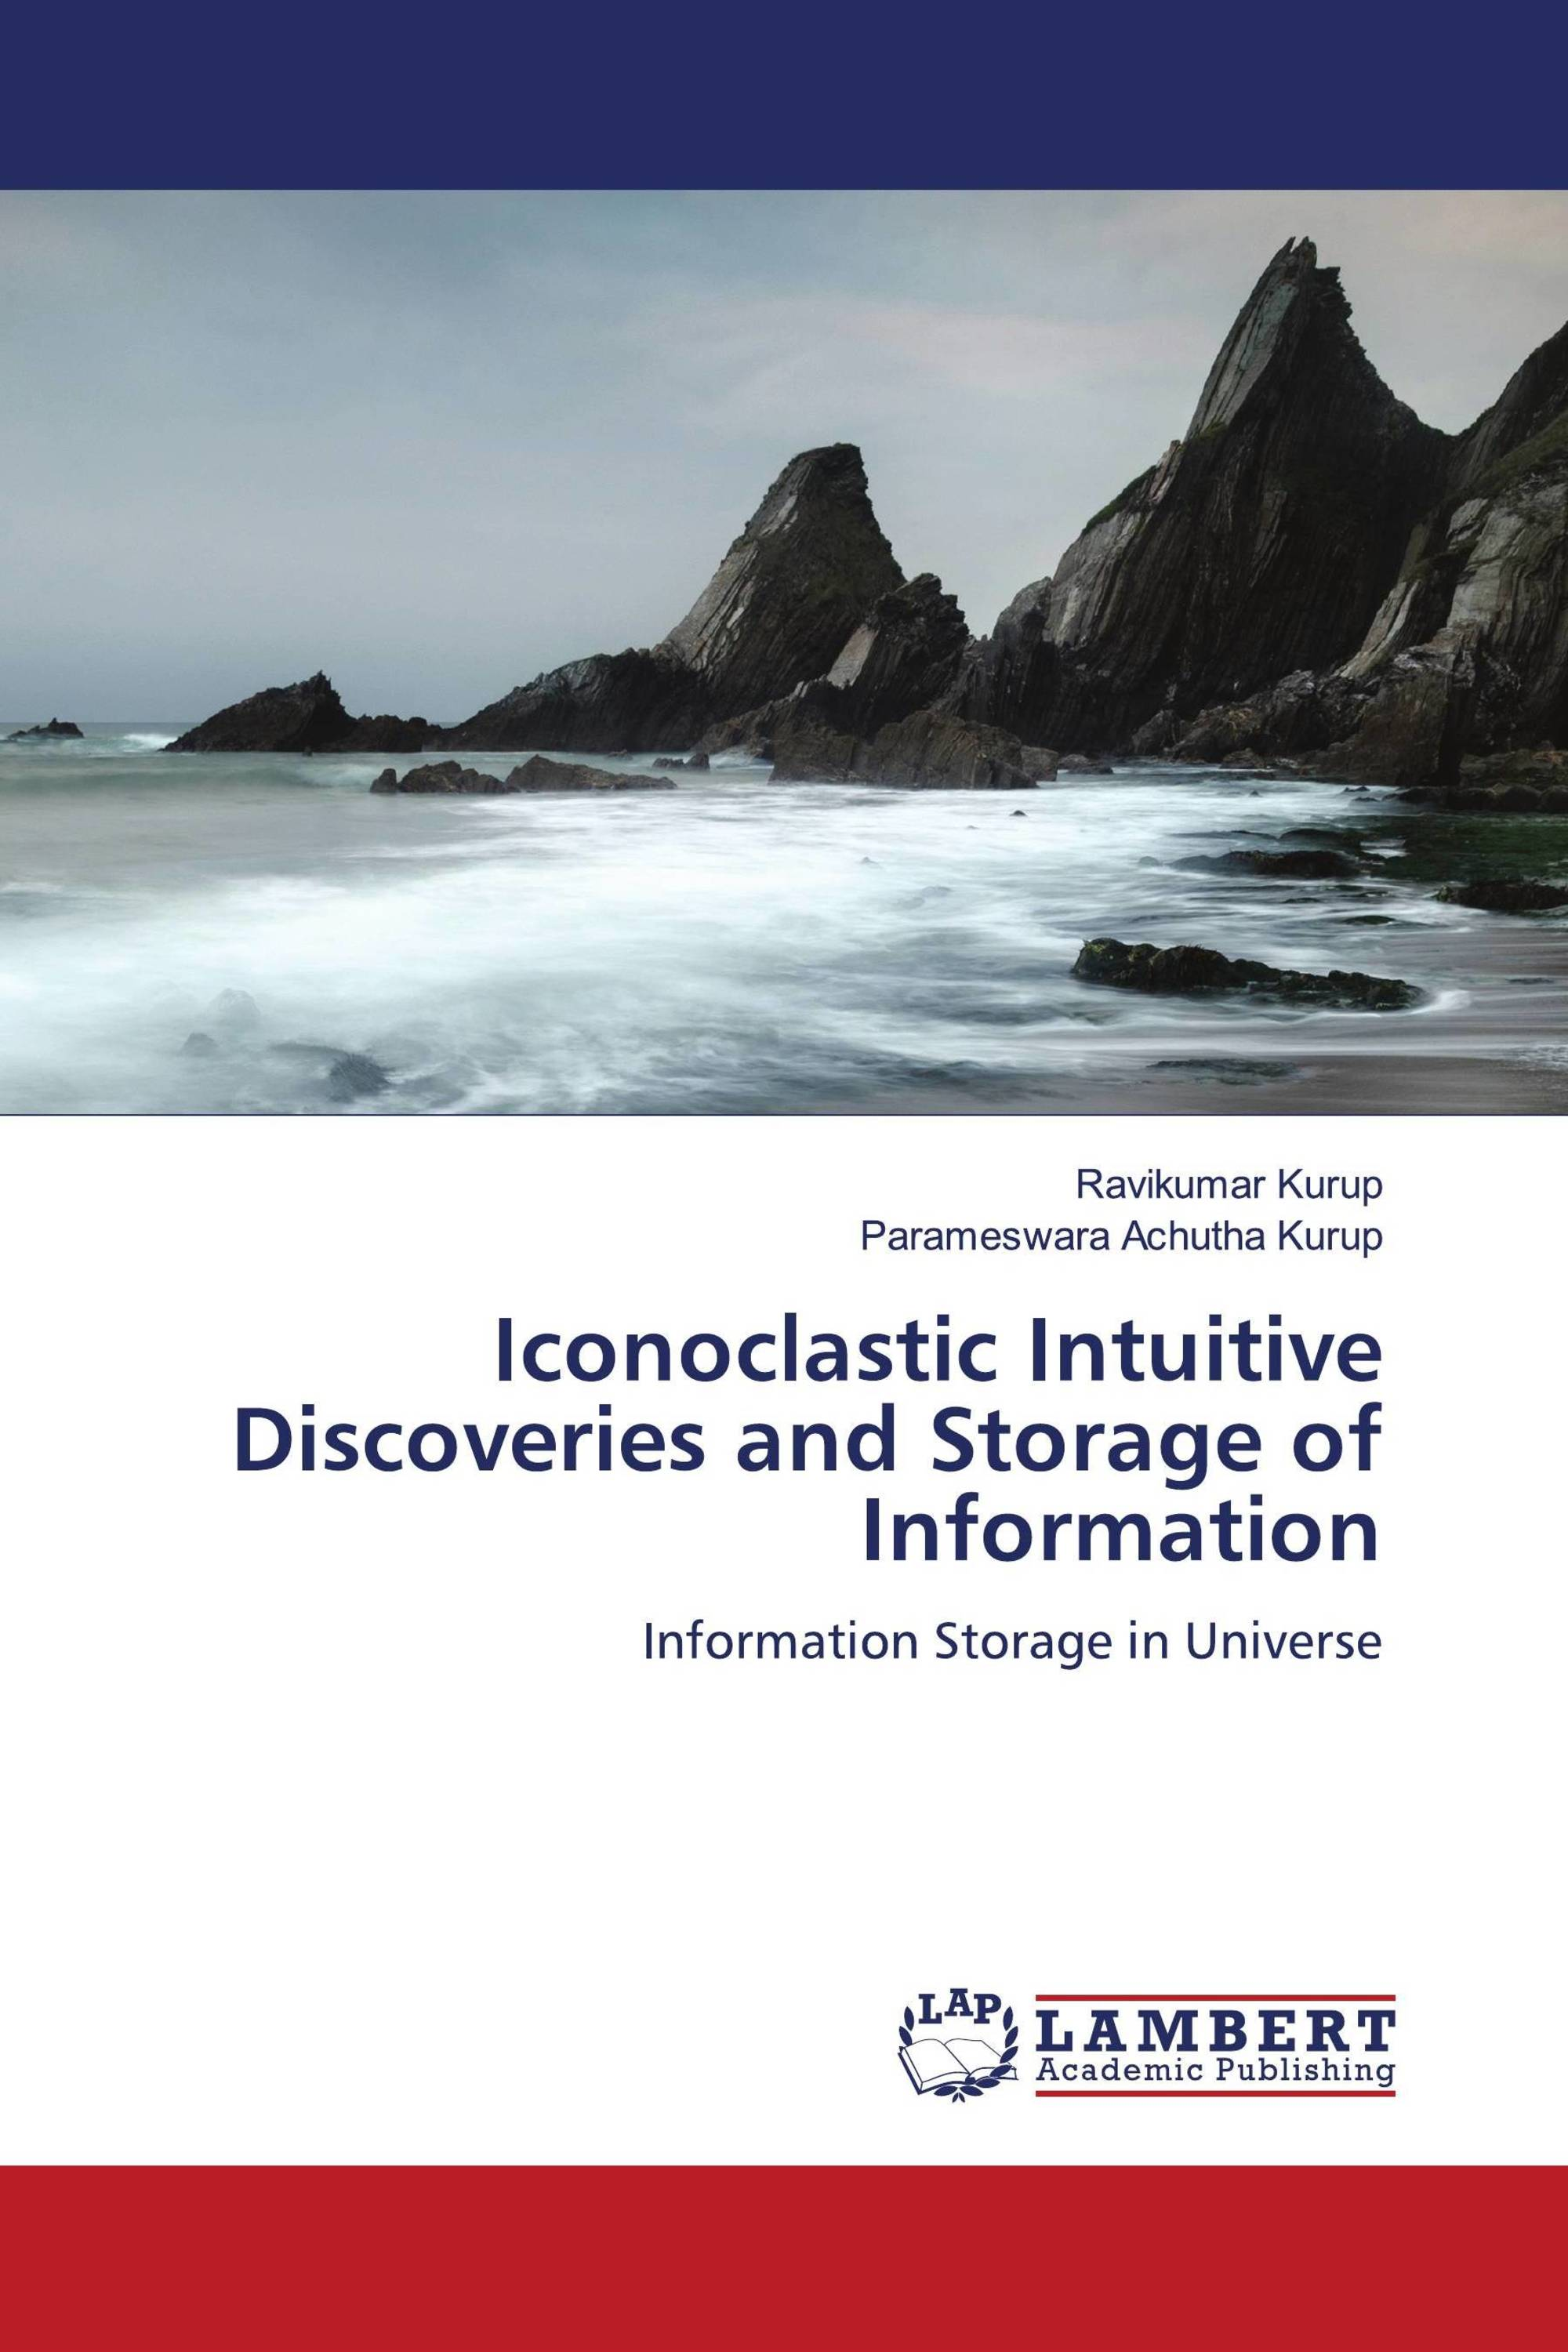 Iconoclastic Intuitive Discoveries and Storage of Information